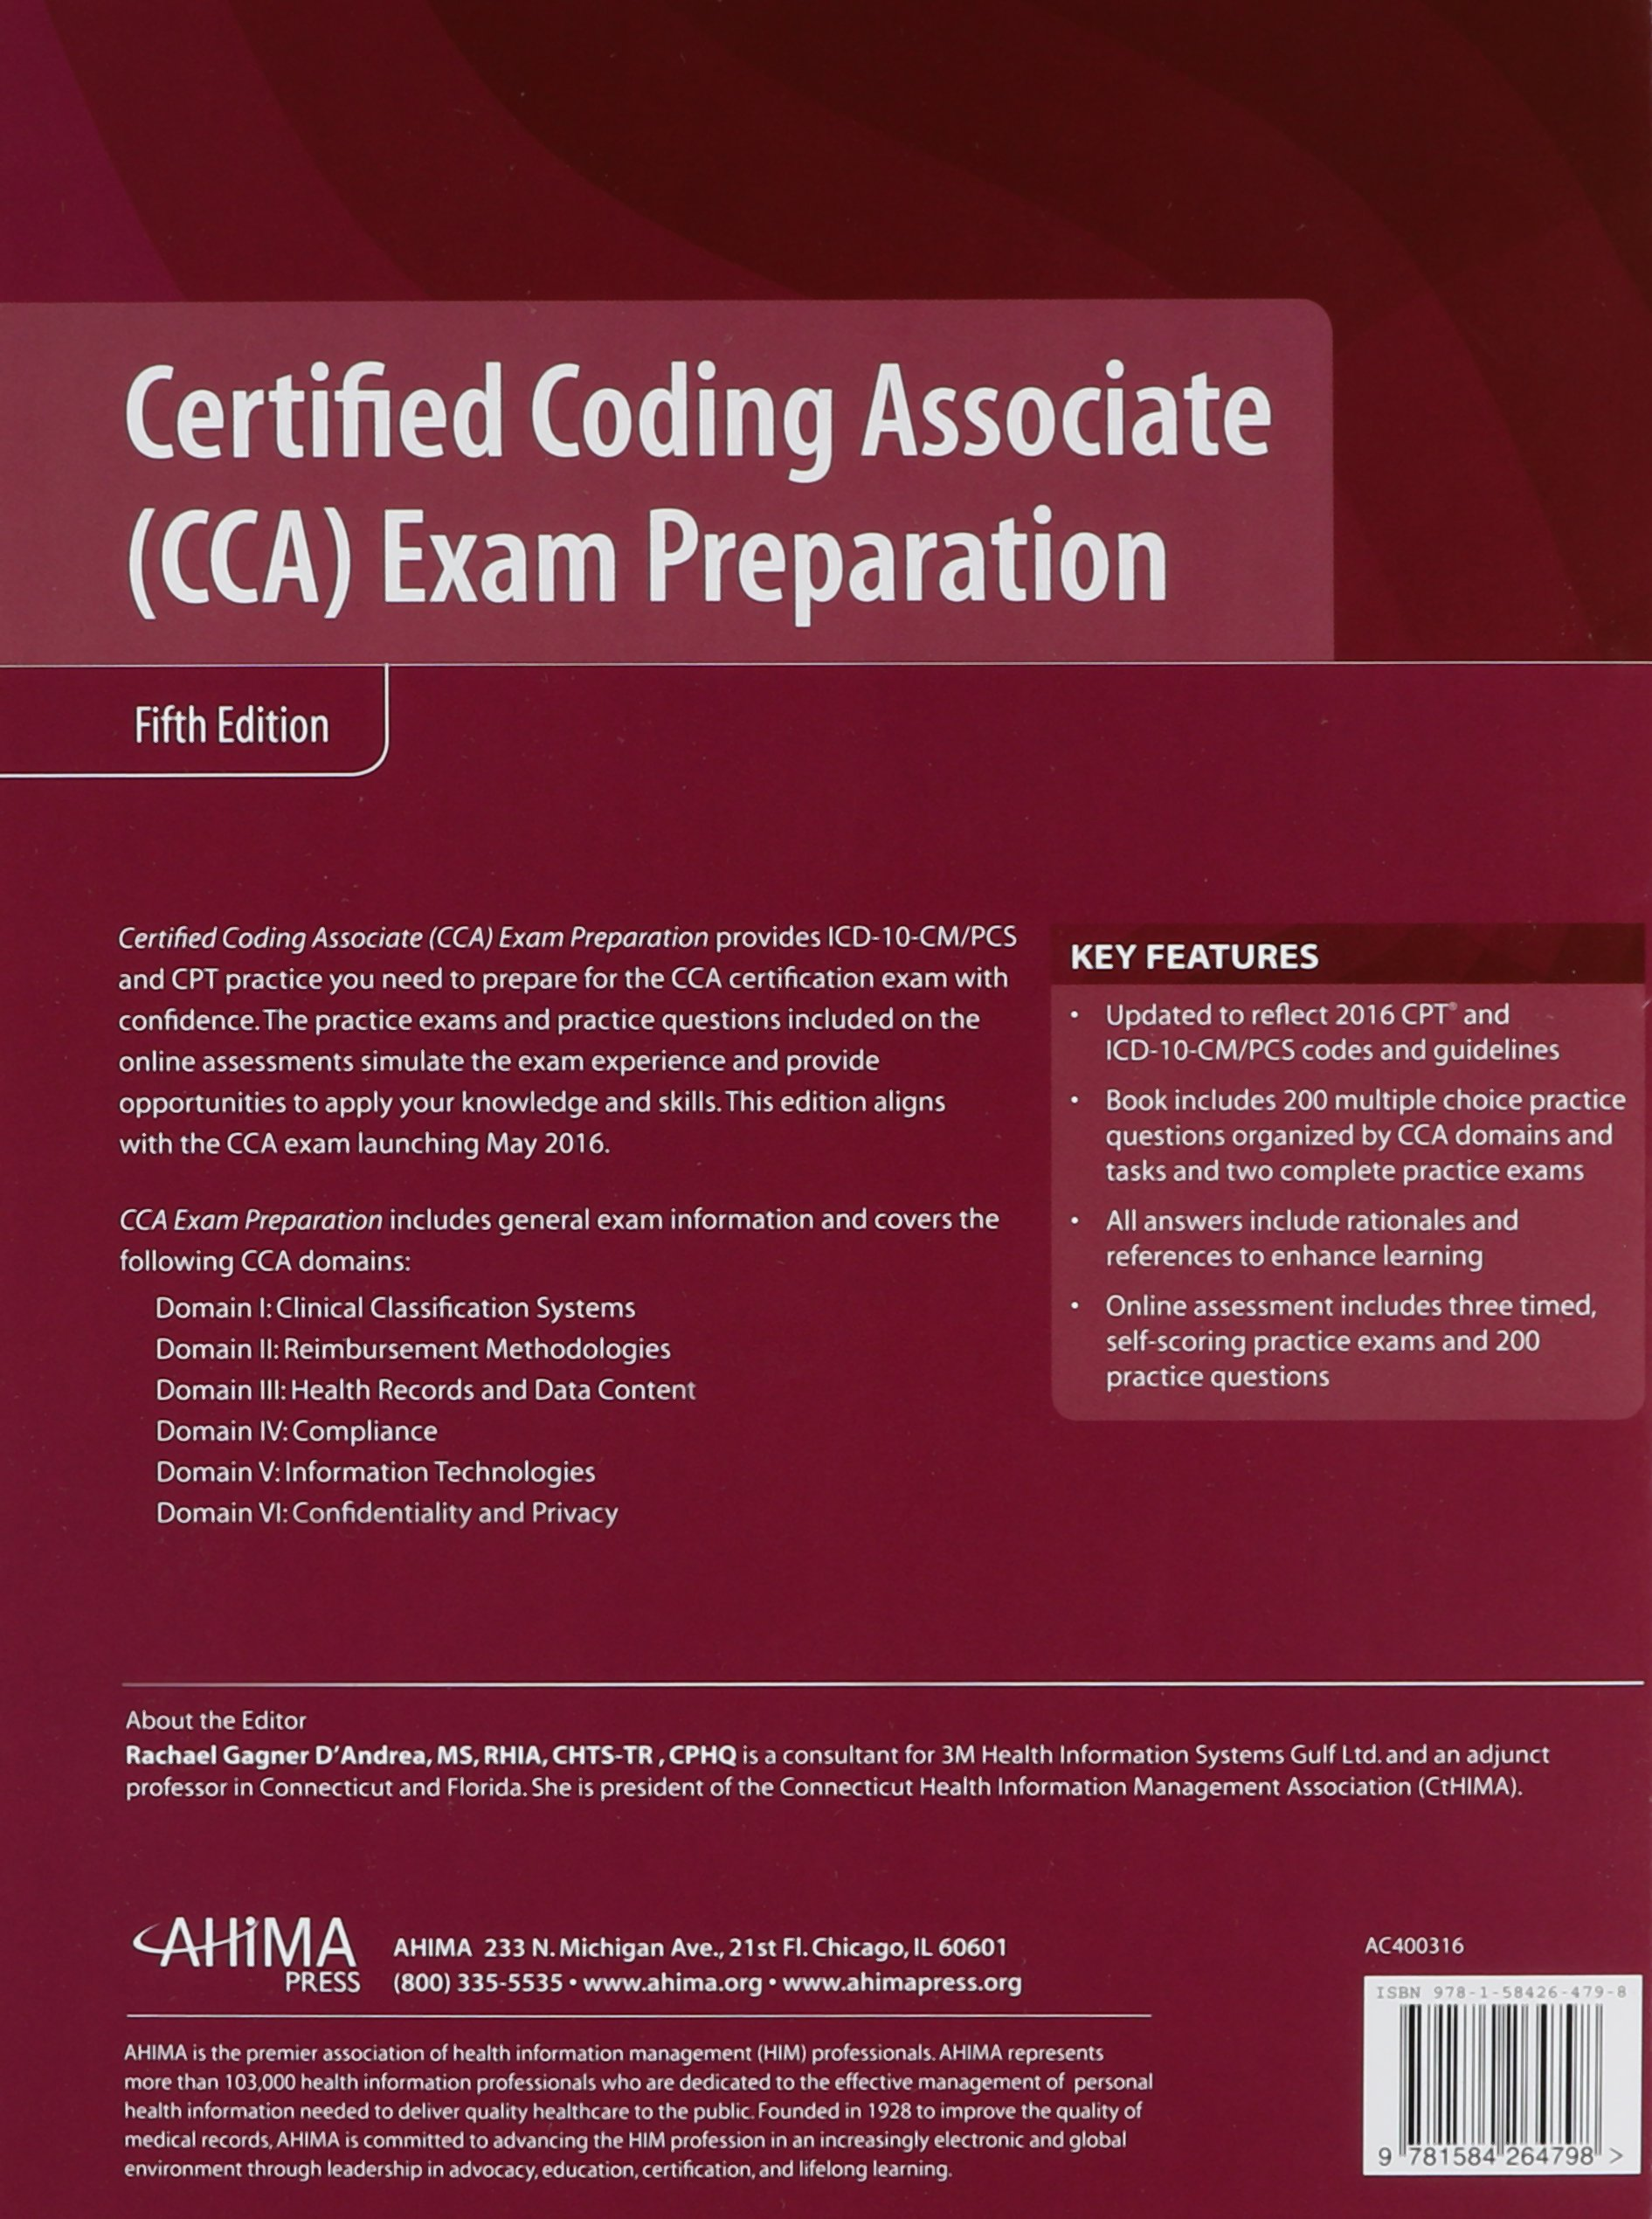 Buy Certified Coding Associate Cca Exam Preparation Book Online At